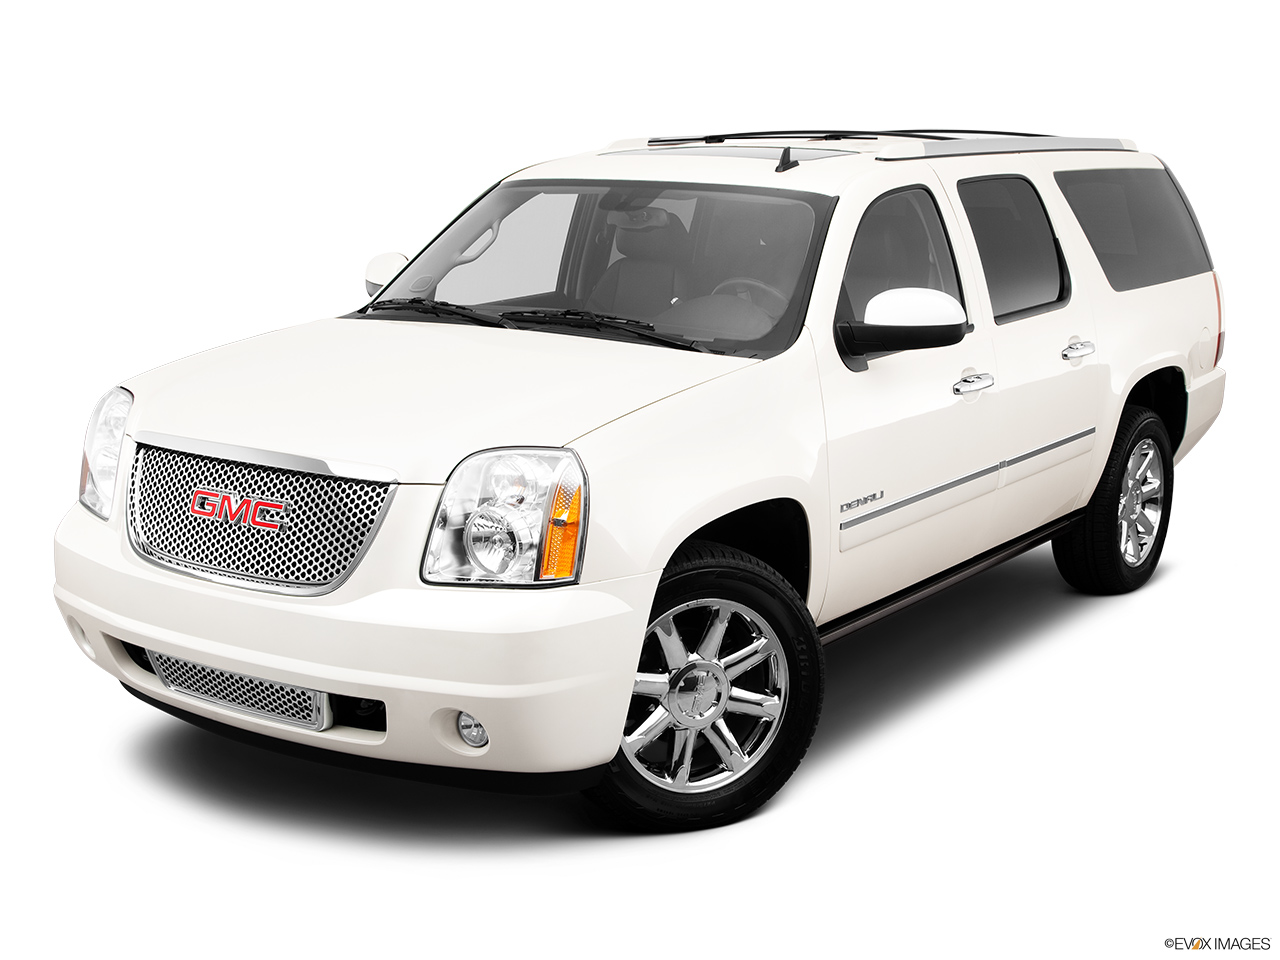 2014 gmc yukon xl 2wd 1500 denali. Black Bedroom Furniture Sets. Home Design Ideas